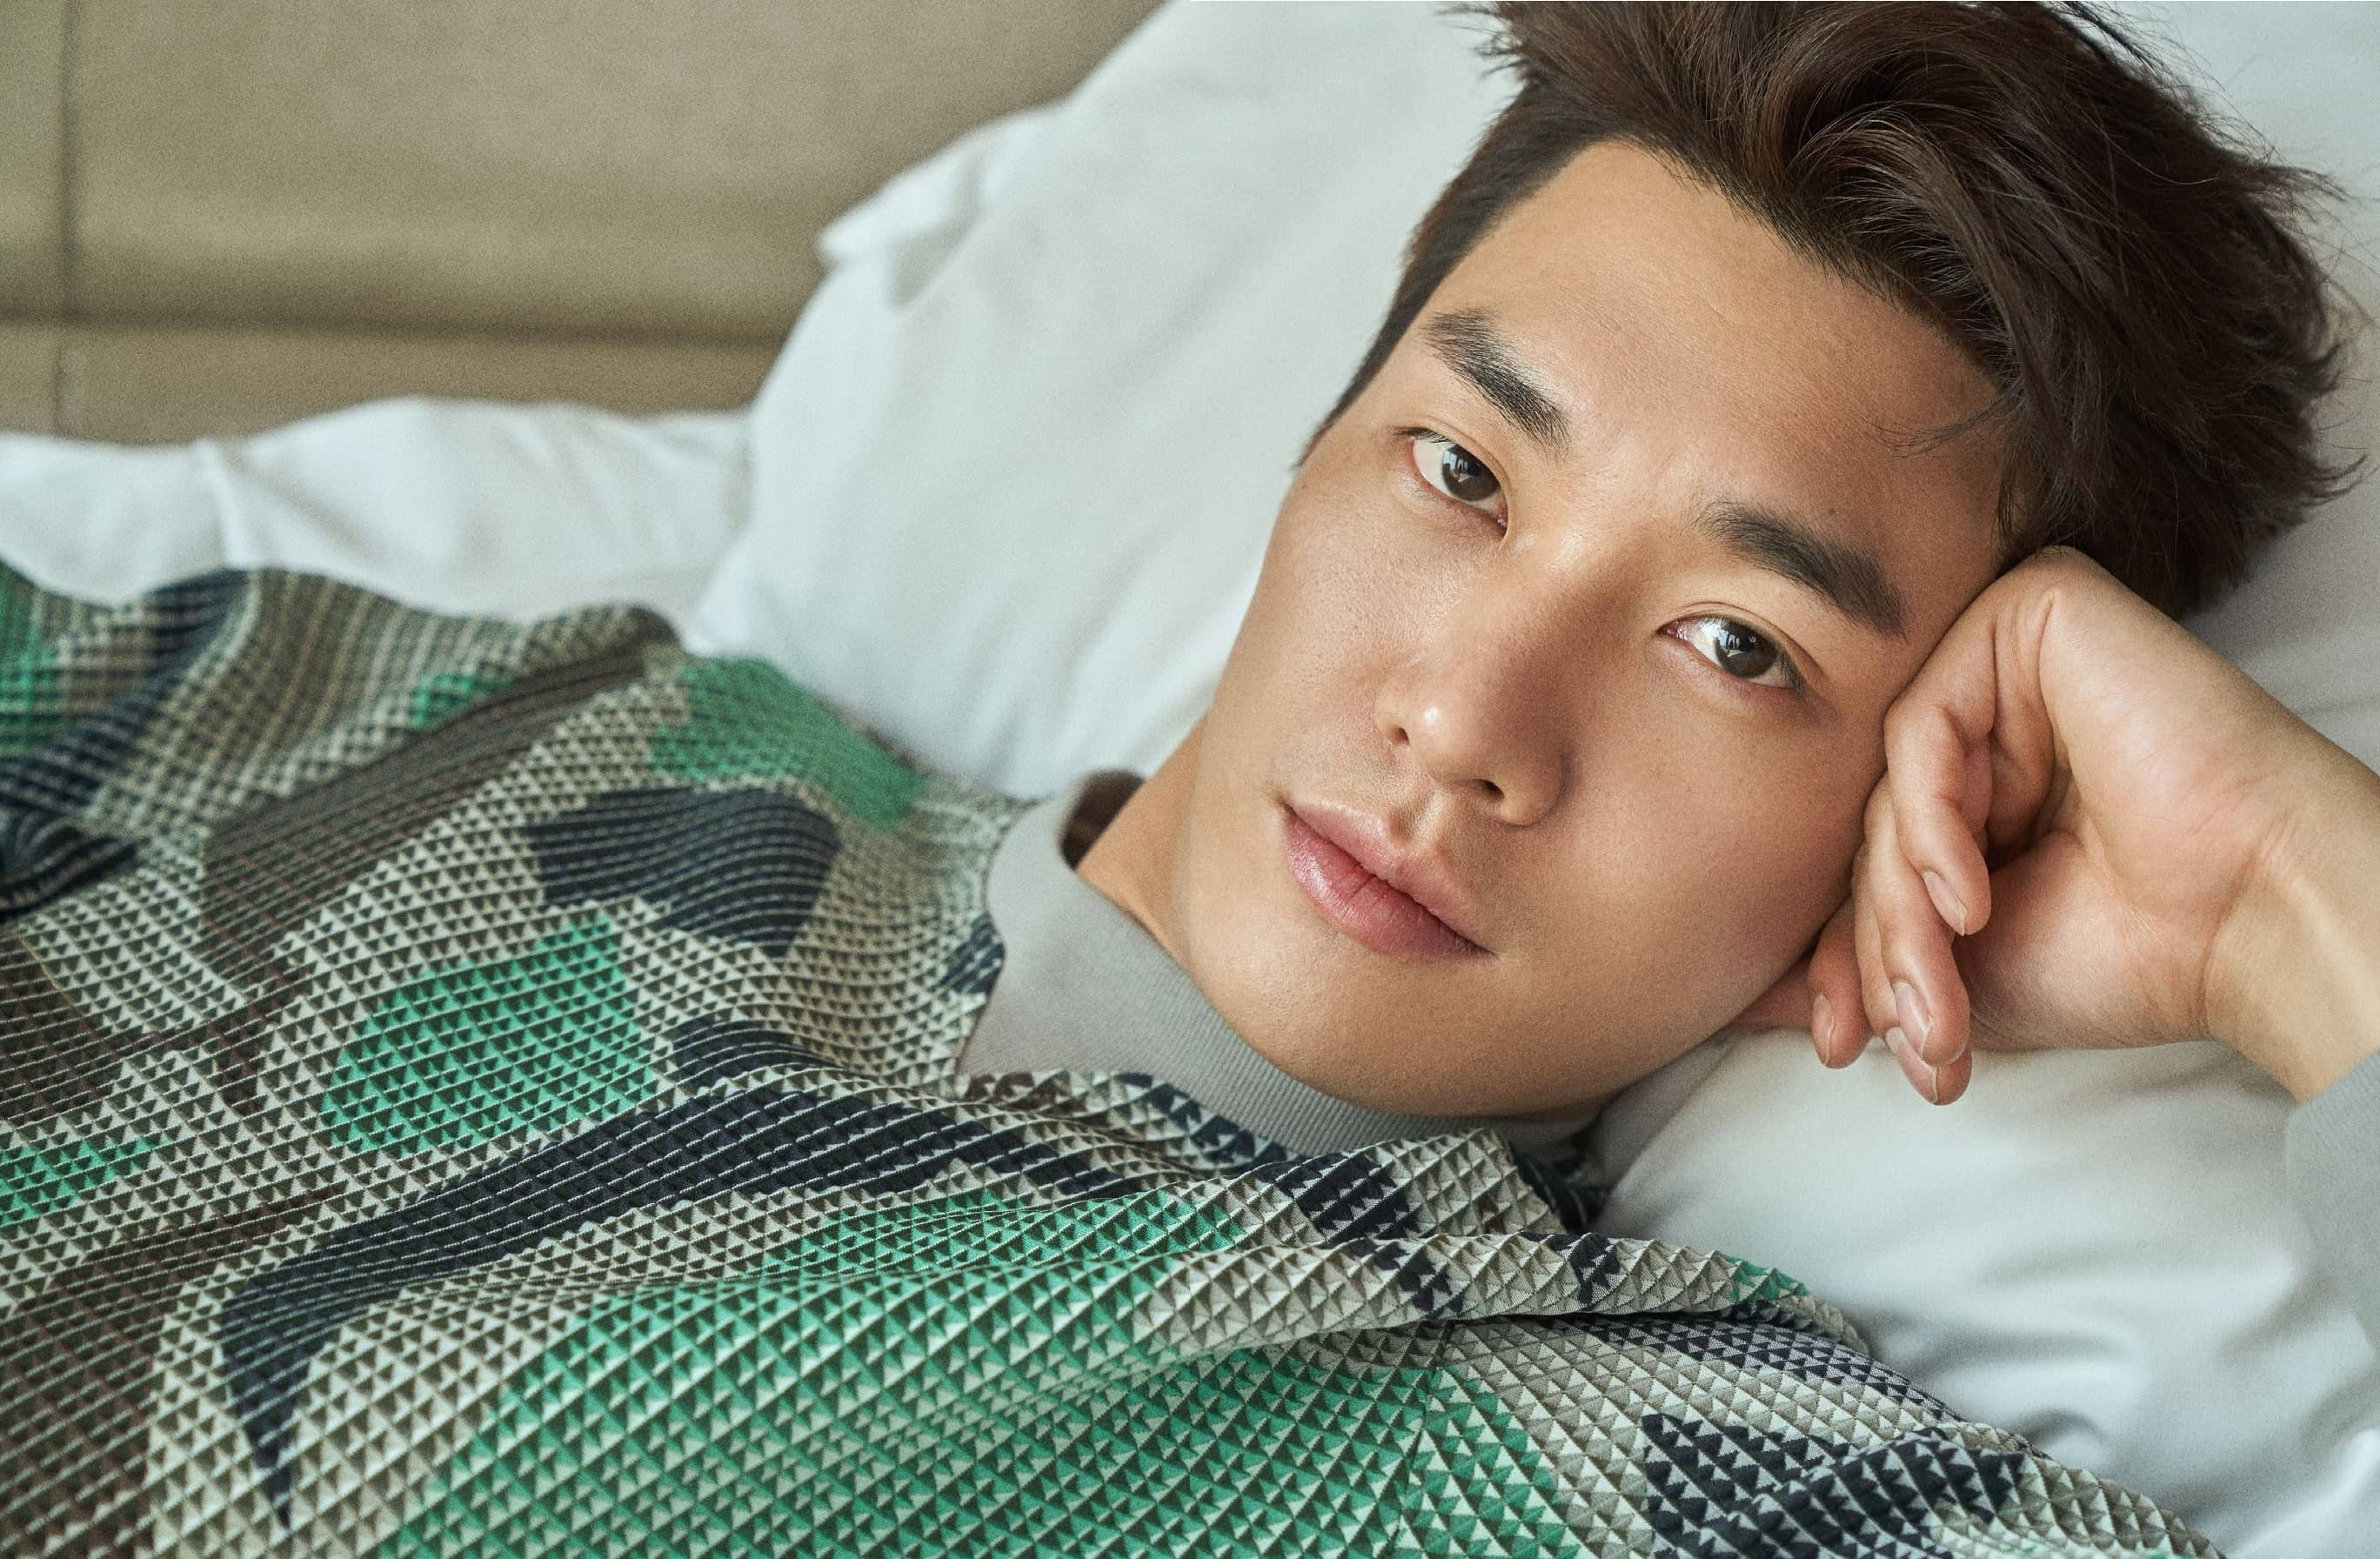 Kim Young Kwang Challenges The Entertainment Industry With His Acting chops